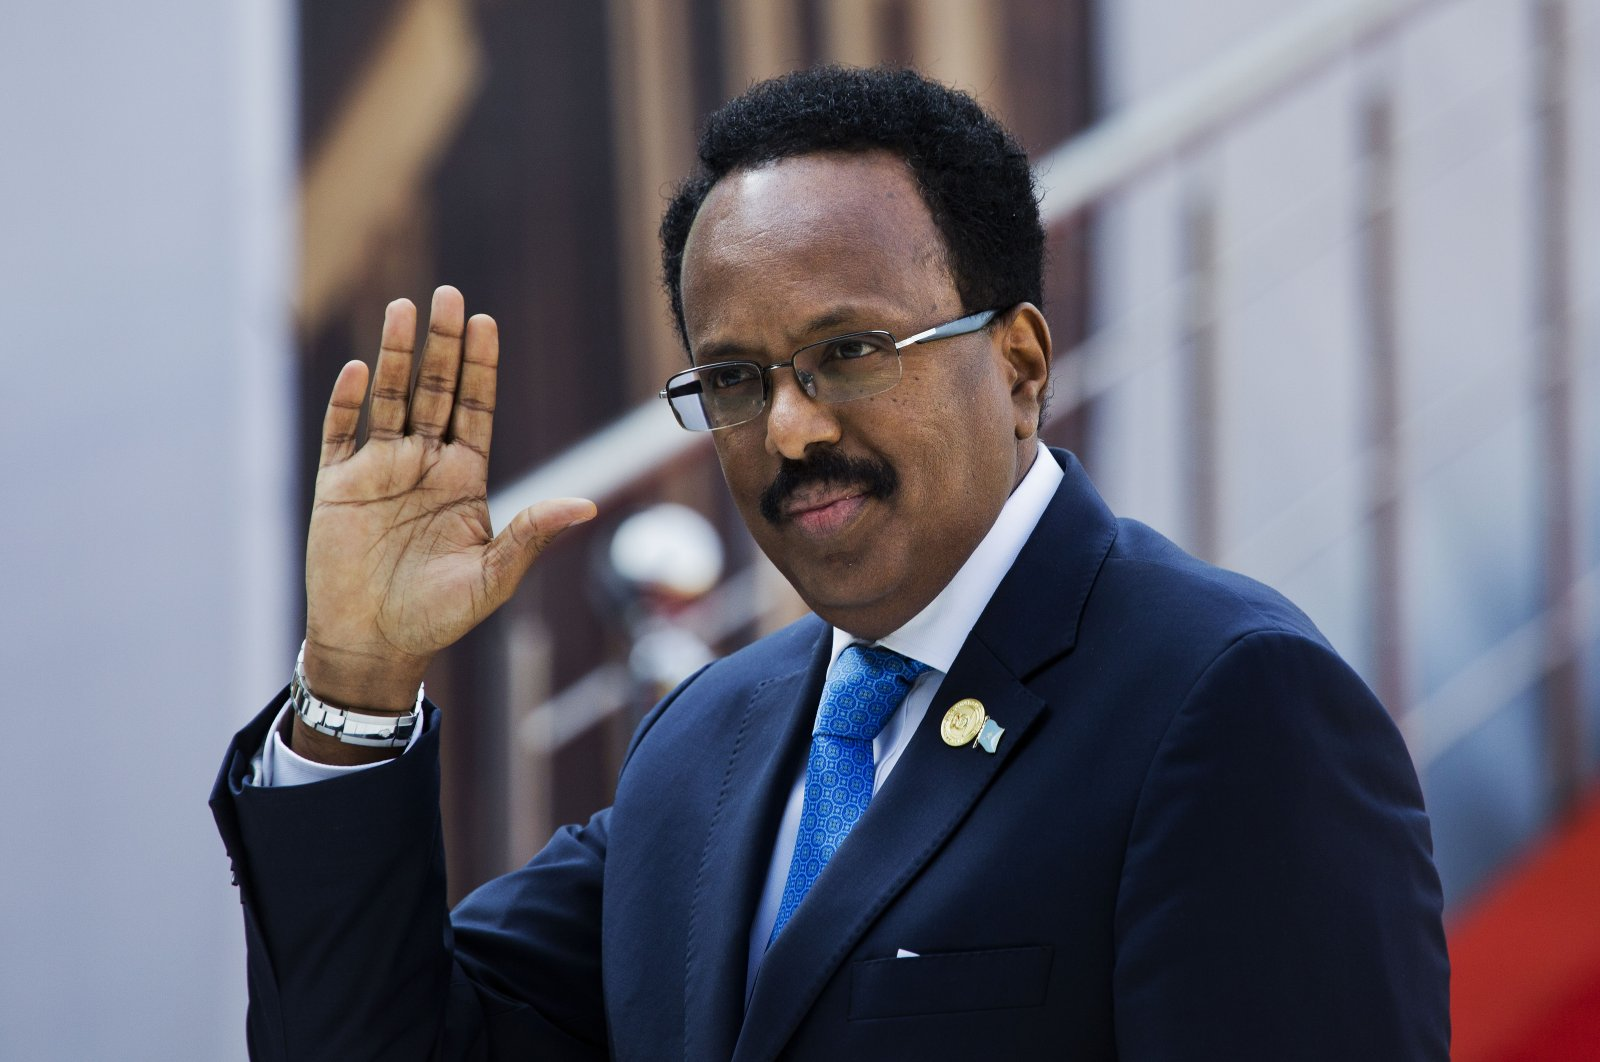 Somalia's President Mohamed Abdullahi Mohamed arrives for the swearing-in ceremony of South African President Cyril Ramaphosa, Pretoria, South Africa, May 25, 2019. (AP Photo)